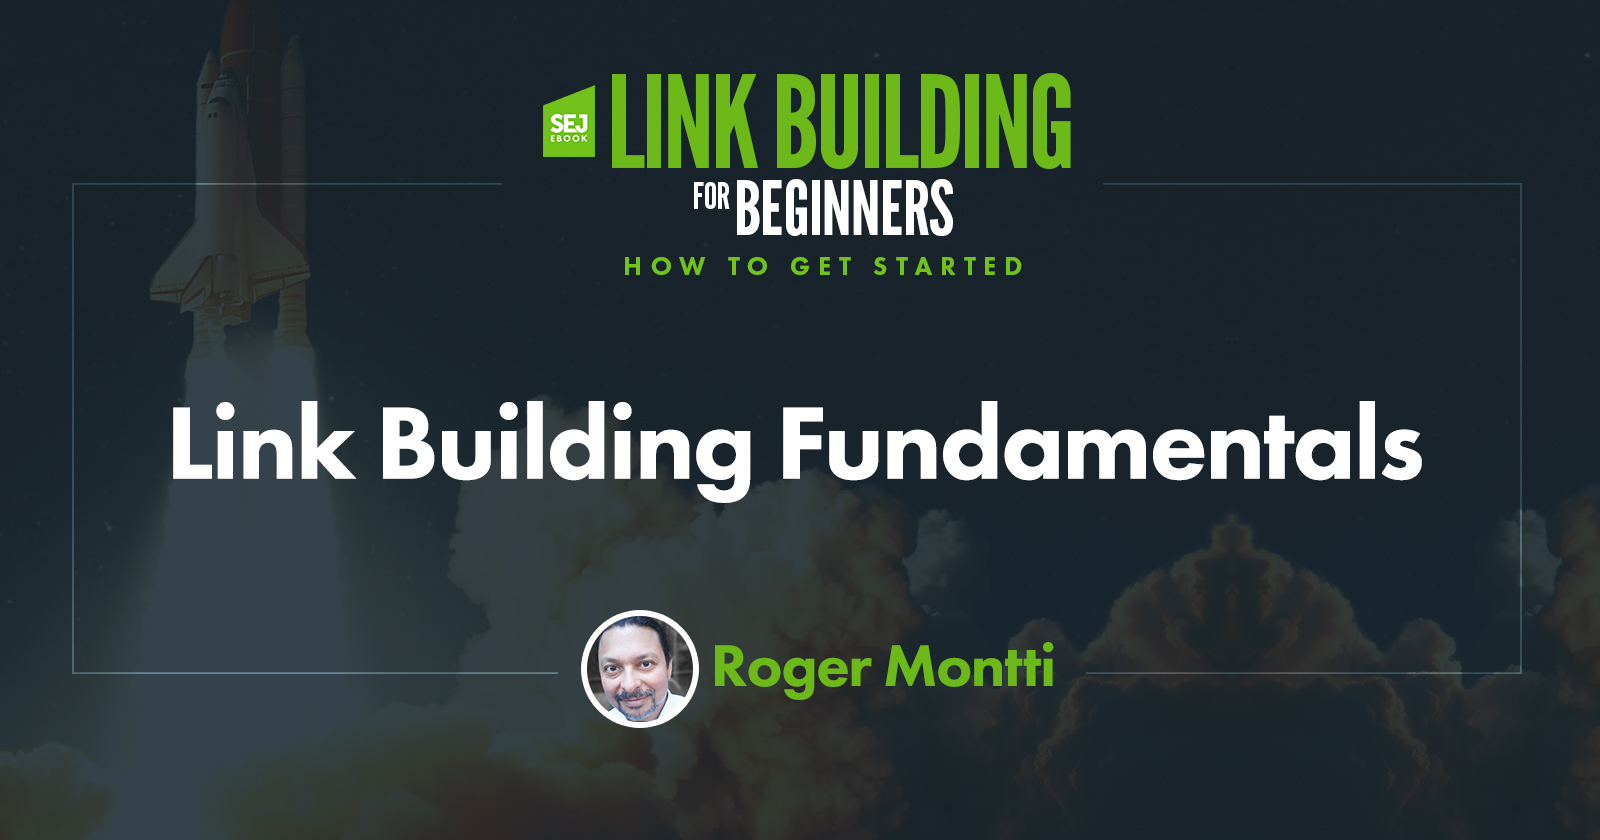 Linkbuilding Guide cover image